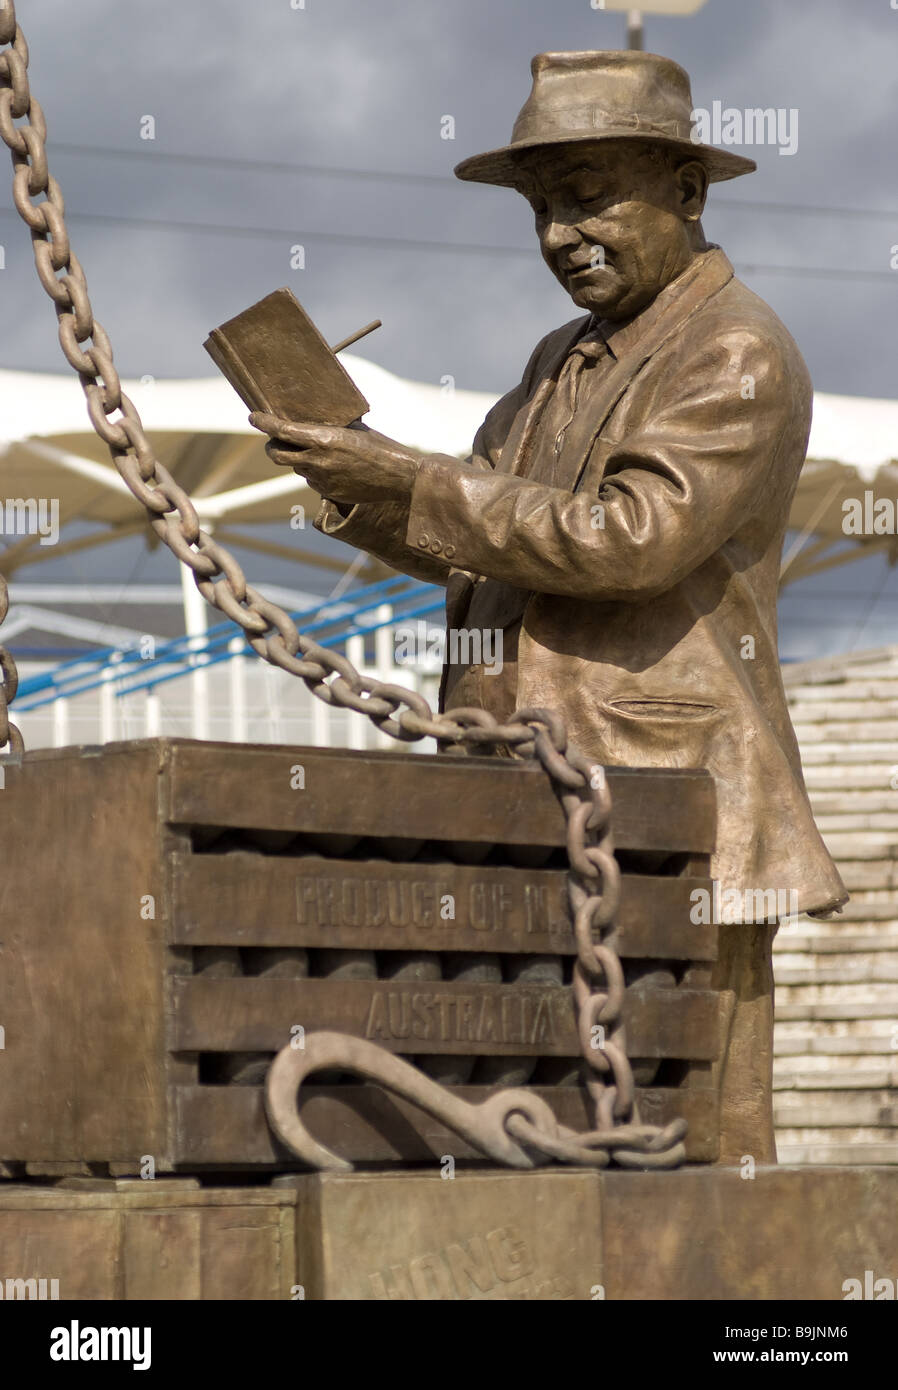 a statue in honour of the dock workers - Stock Image